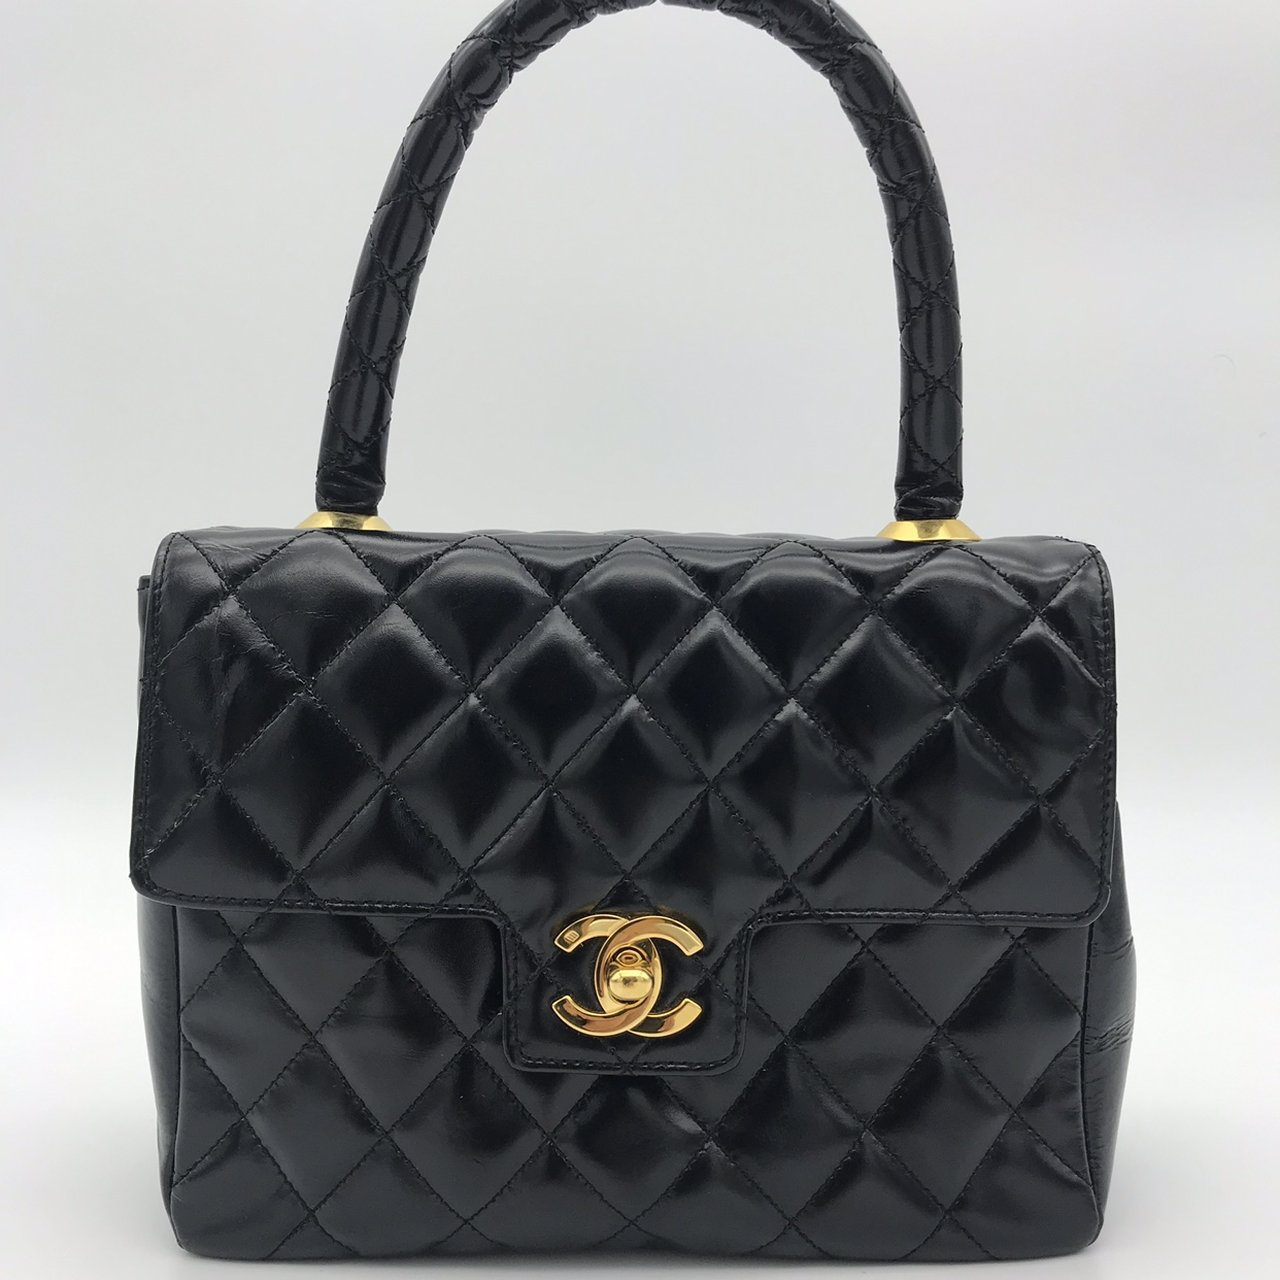 1994 Rare Chanel Mini Quilted Patent Leather Top Handle. is - Depop 5e08f9d01